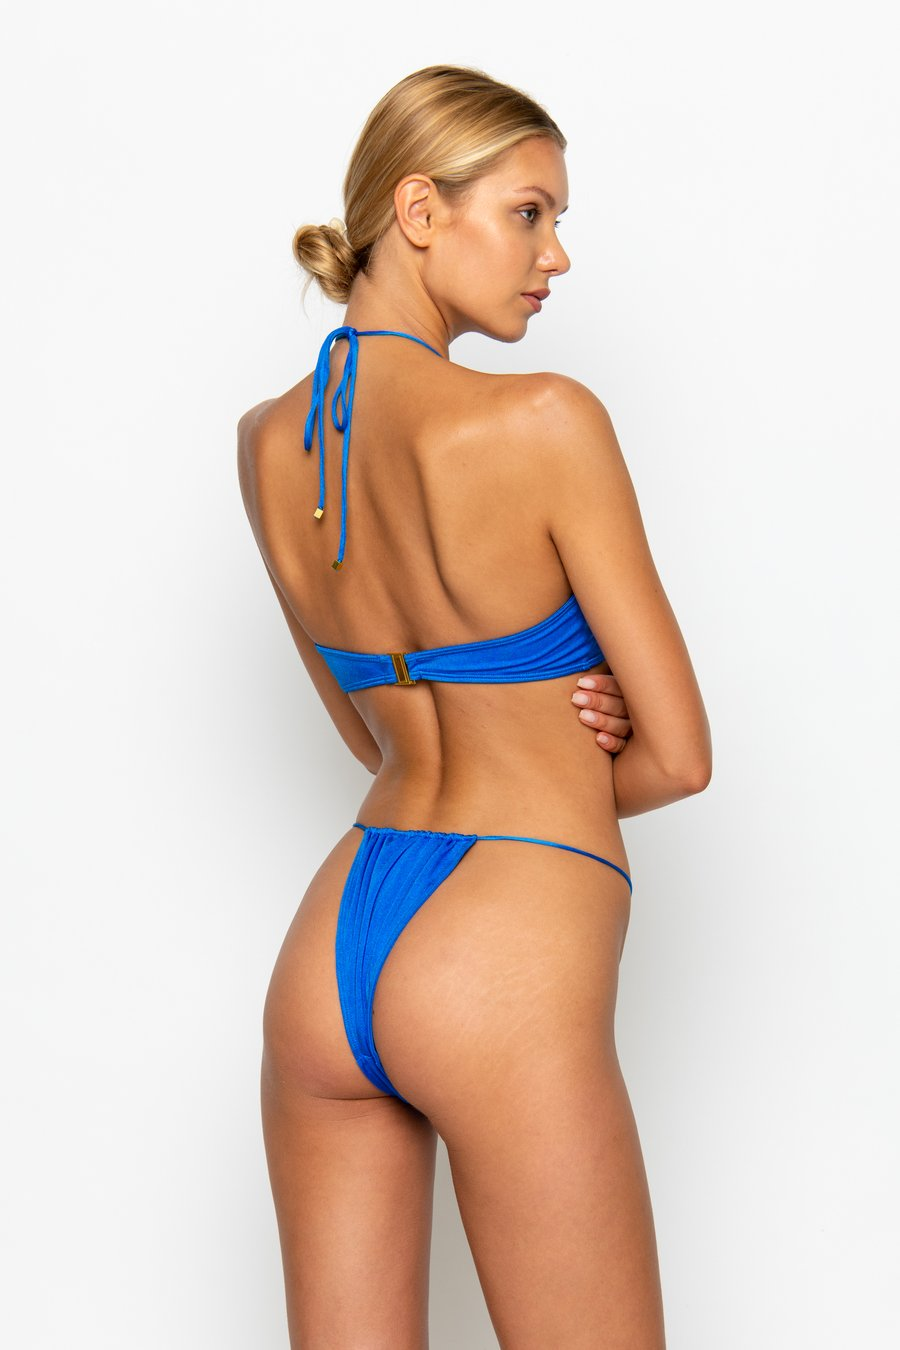 NAOMI Sirius - Tie Side Bikini Bottoms by Sommer Swim, available on sommerswim.com for $69 Bella Hadid Shorts SIMILAR PRODUCT